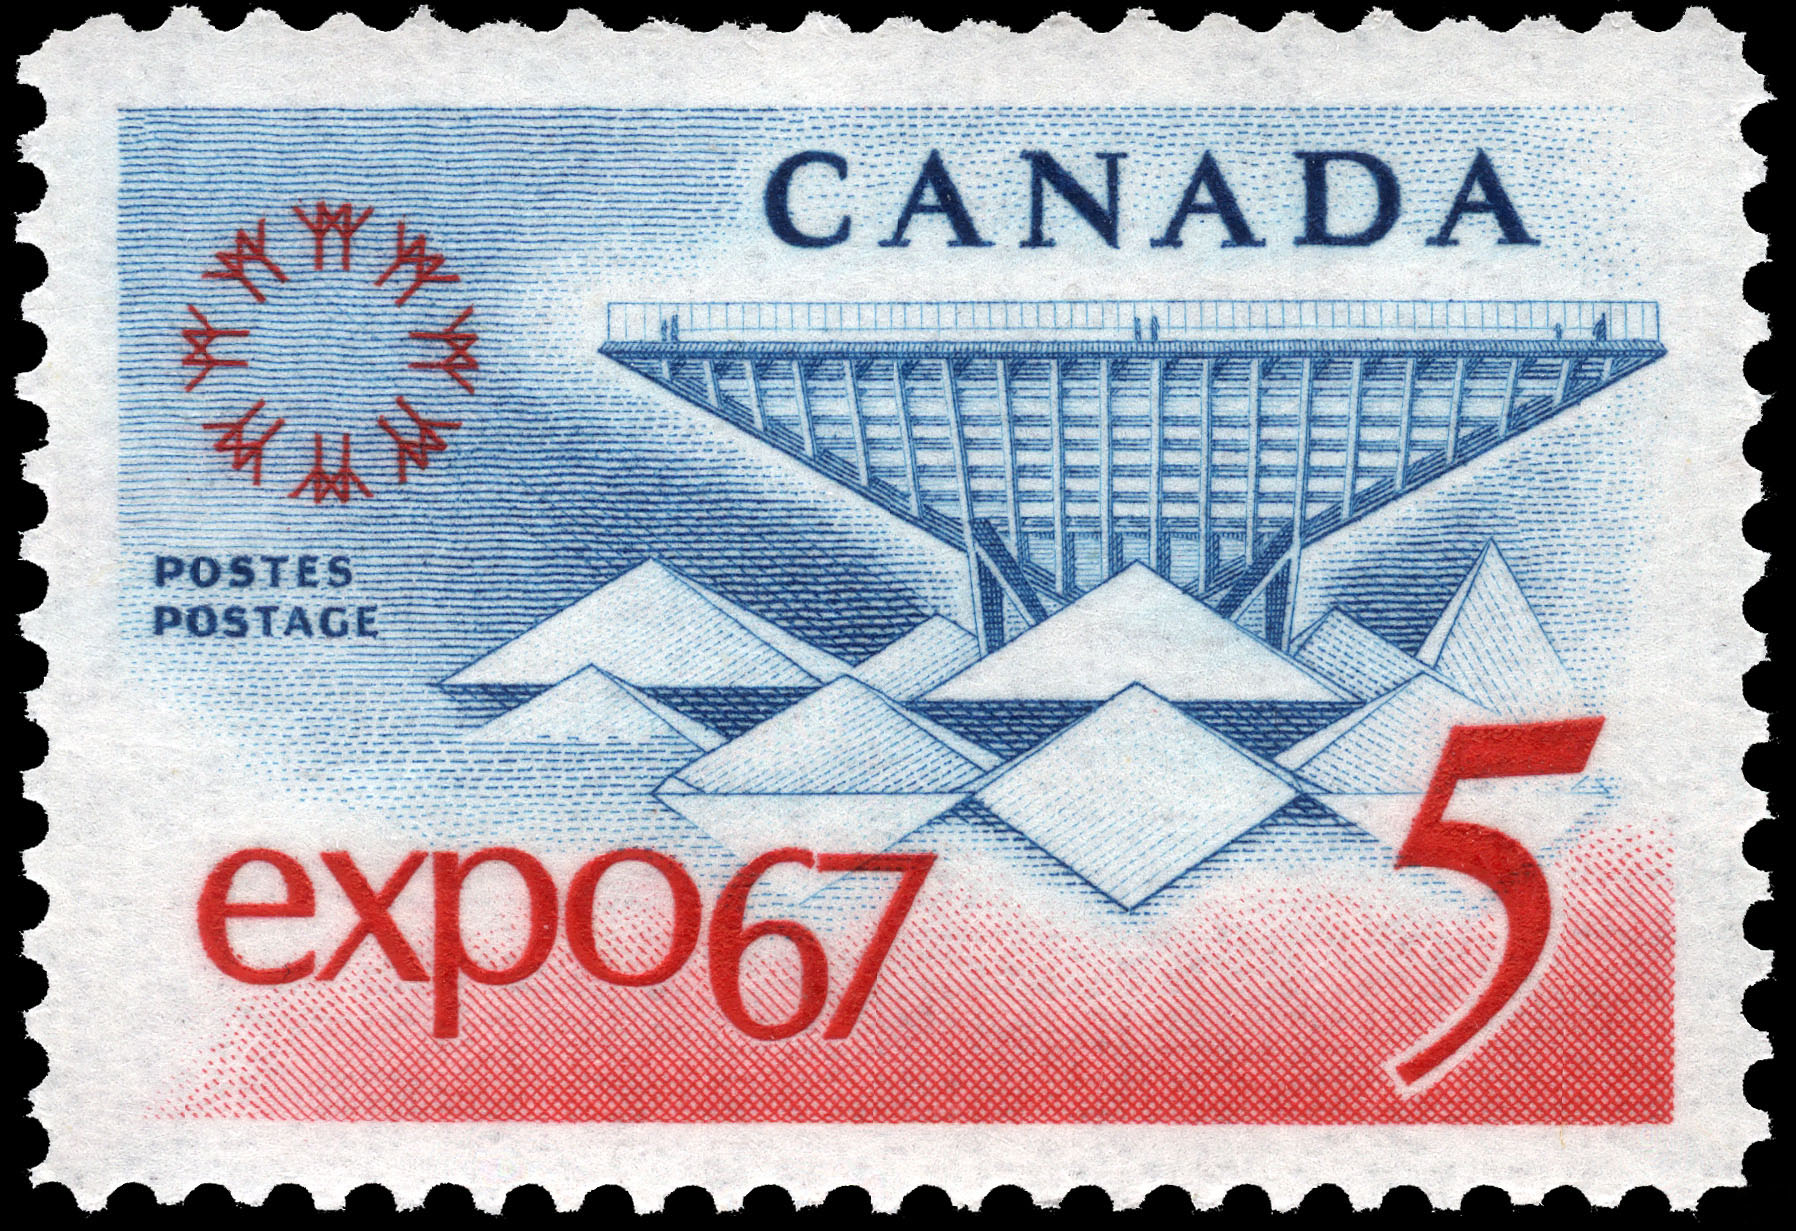 Expo 67 Canada Postage Stamp